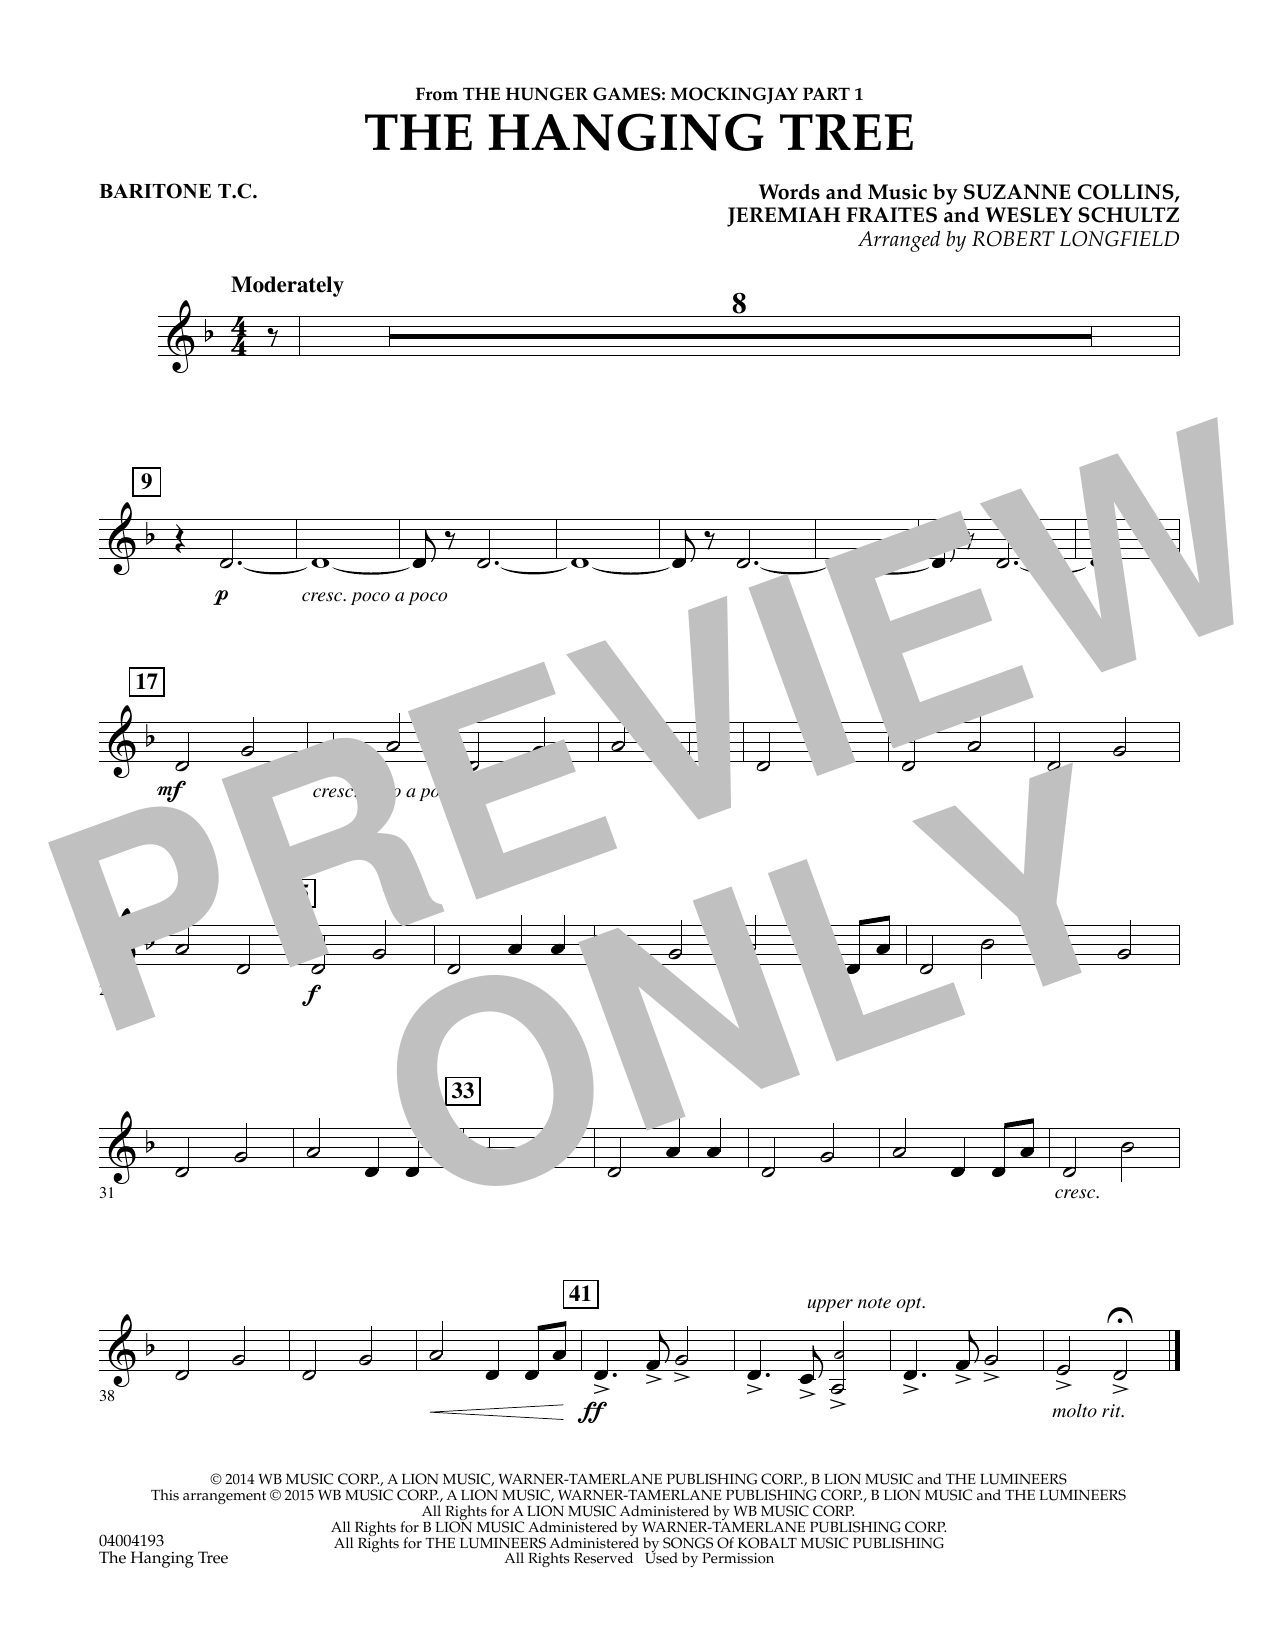 The Hanging Tree (from The Hunger Games: Mockingjay Part 1) - Baritone T.C. (Concert Band)